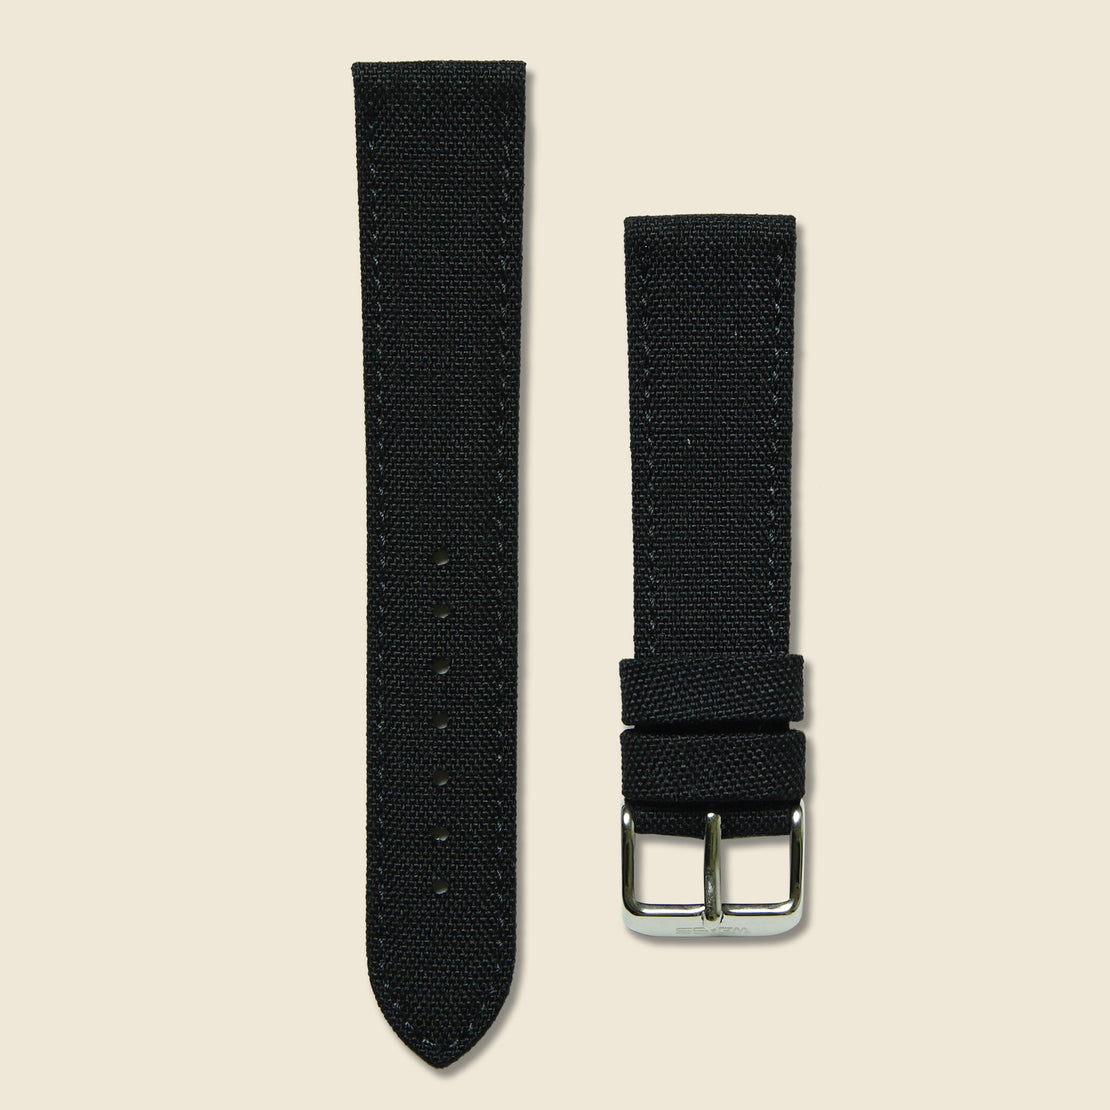 Weiss Watch Co Canvas Watch Band - Black